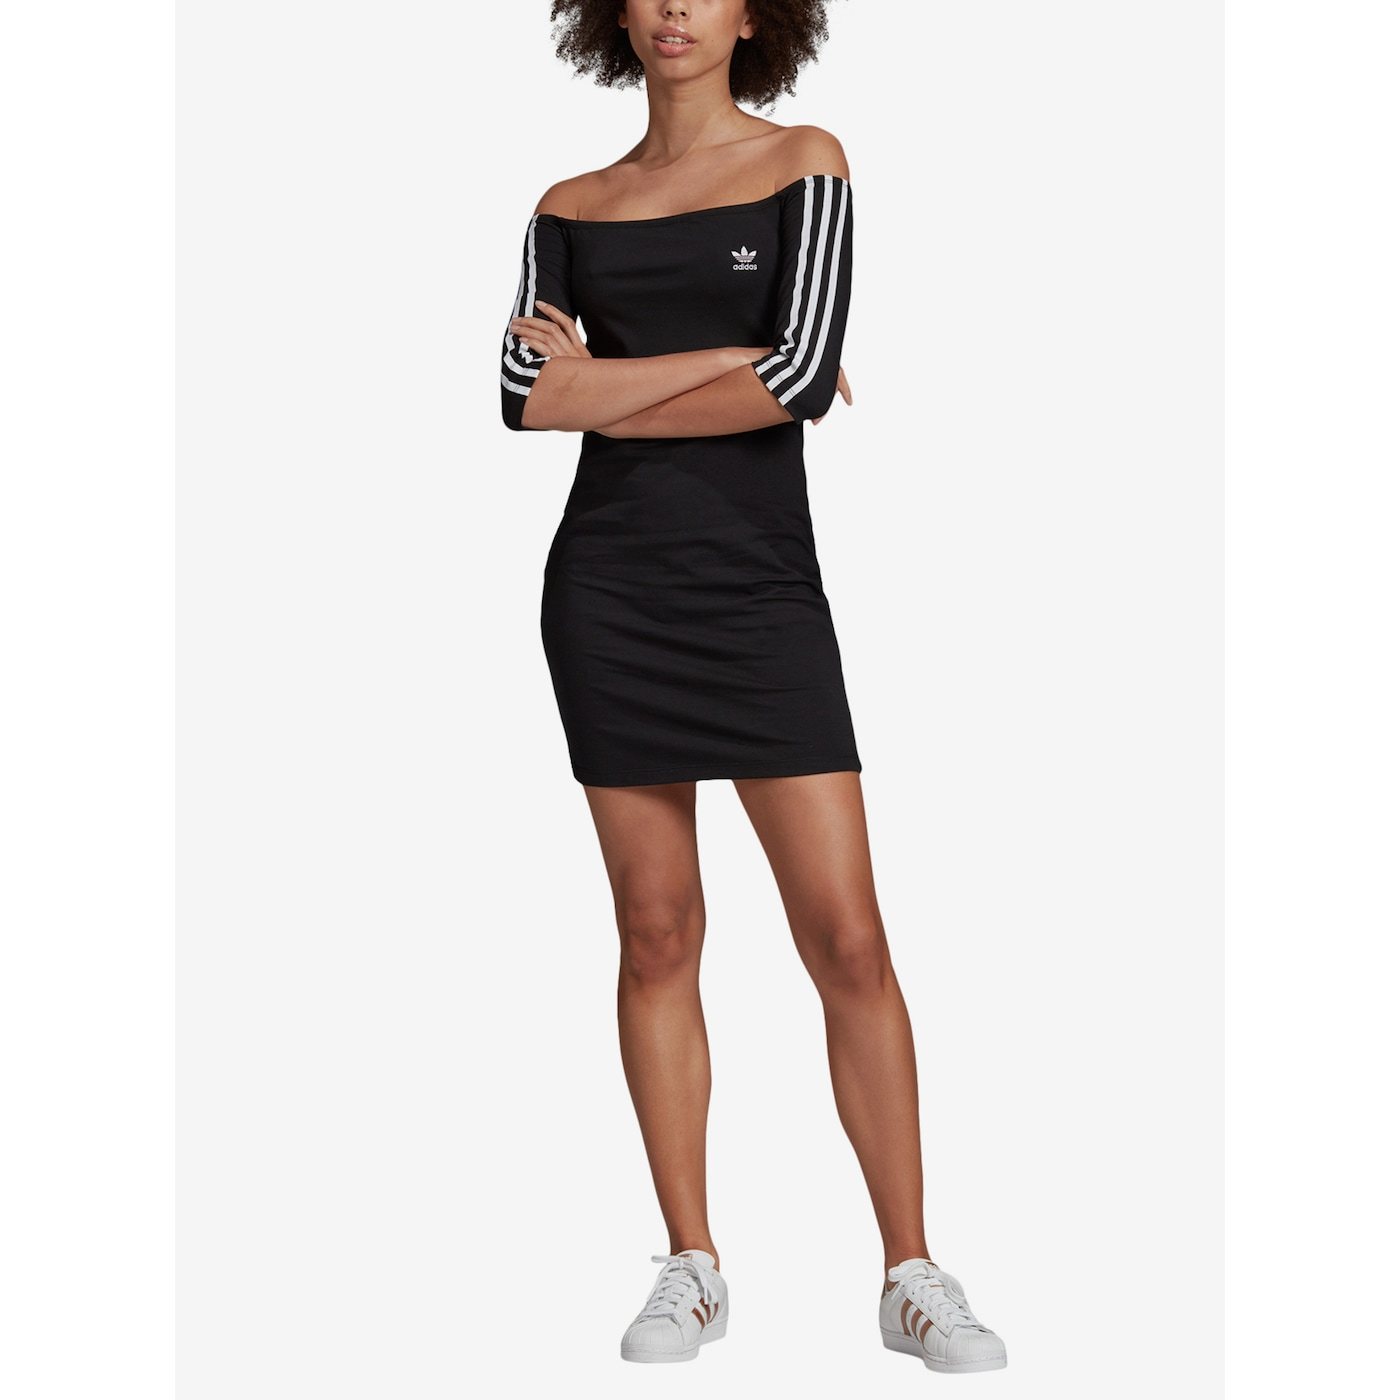 Adidas Originals Shoulder Dress